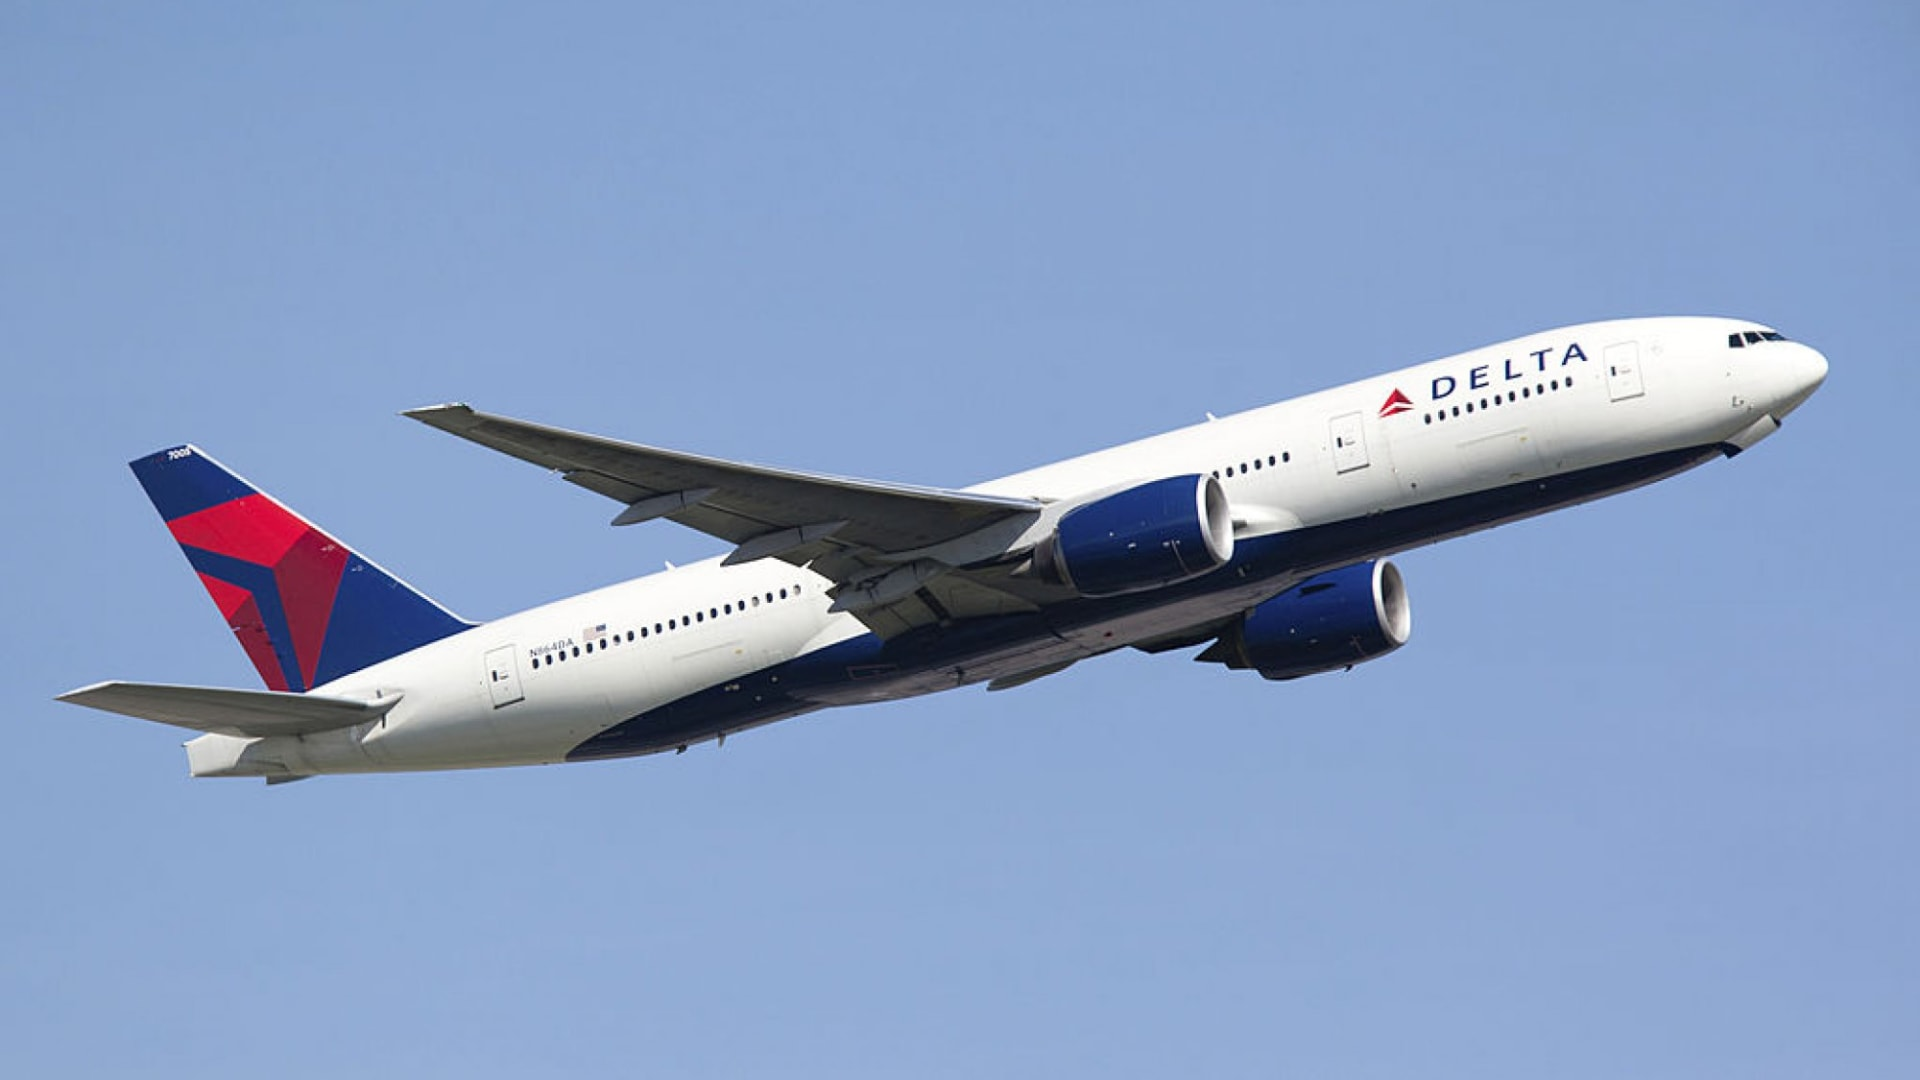 Delta Just Flew Its First 'Covid-Free' Flight. It Could Be a Model for Getting Back to Normal